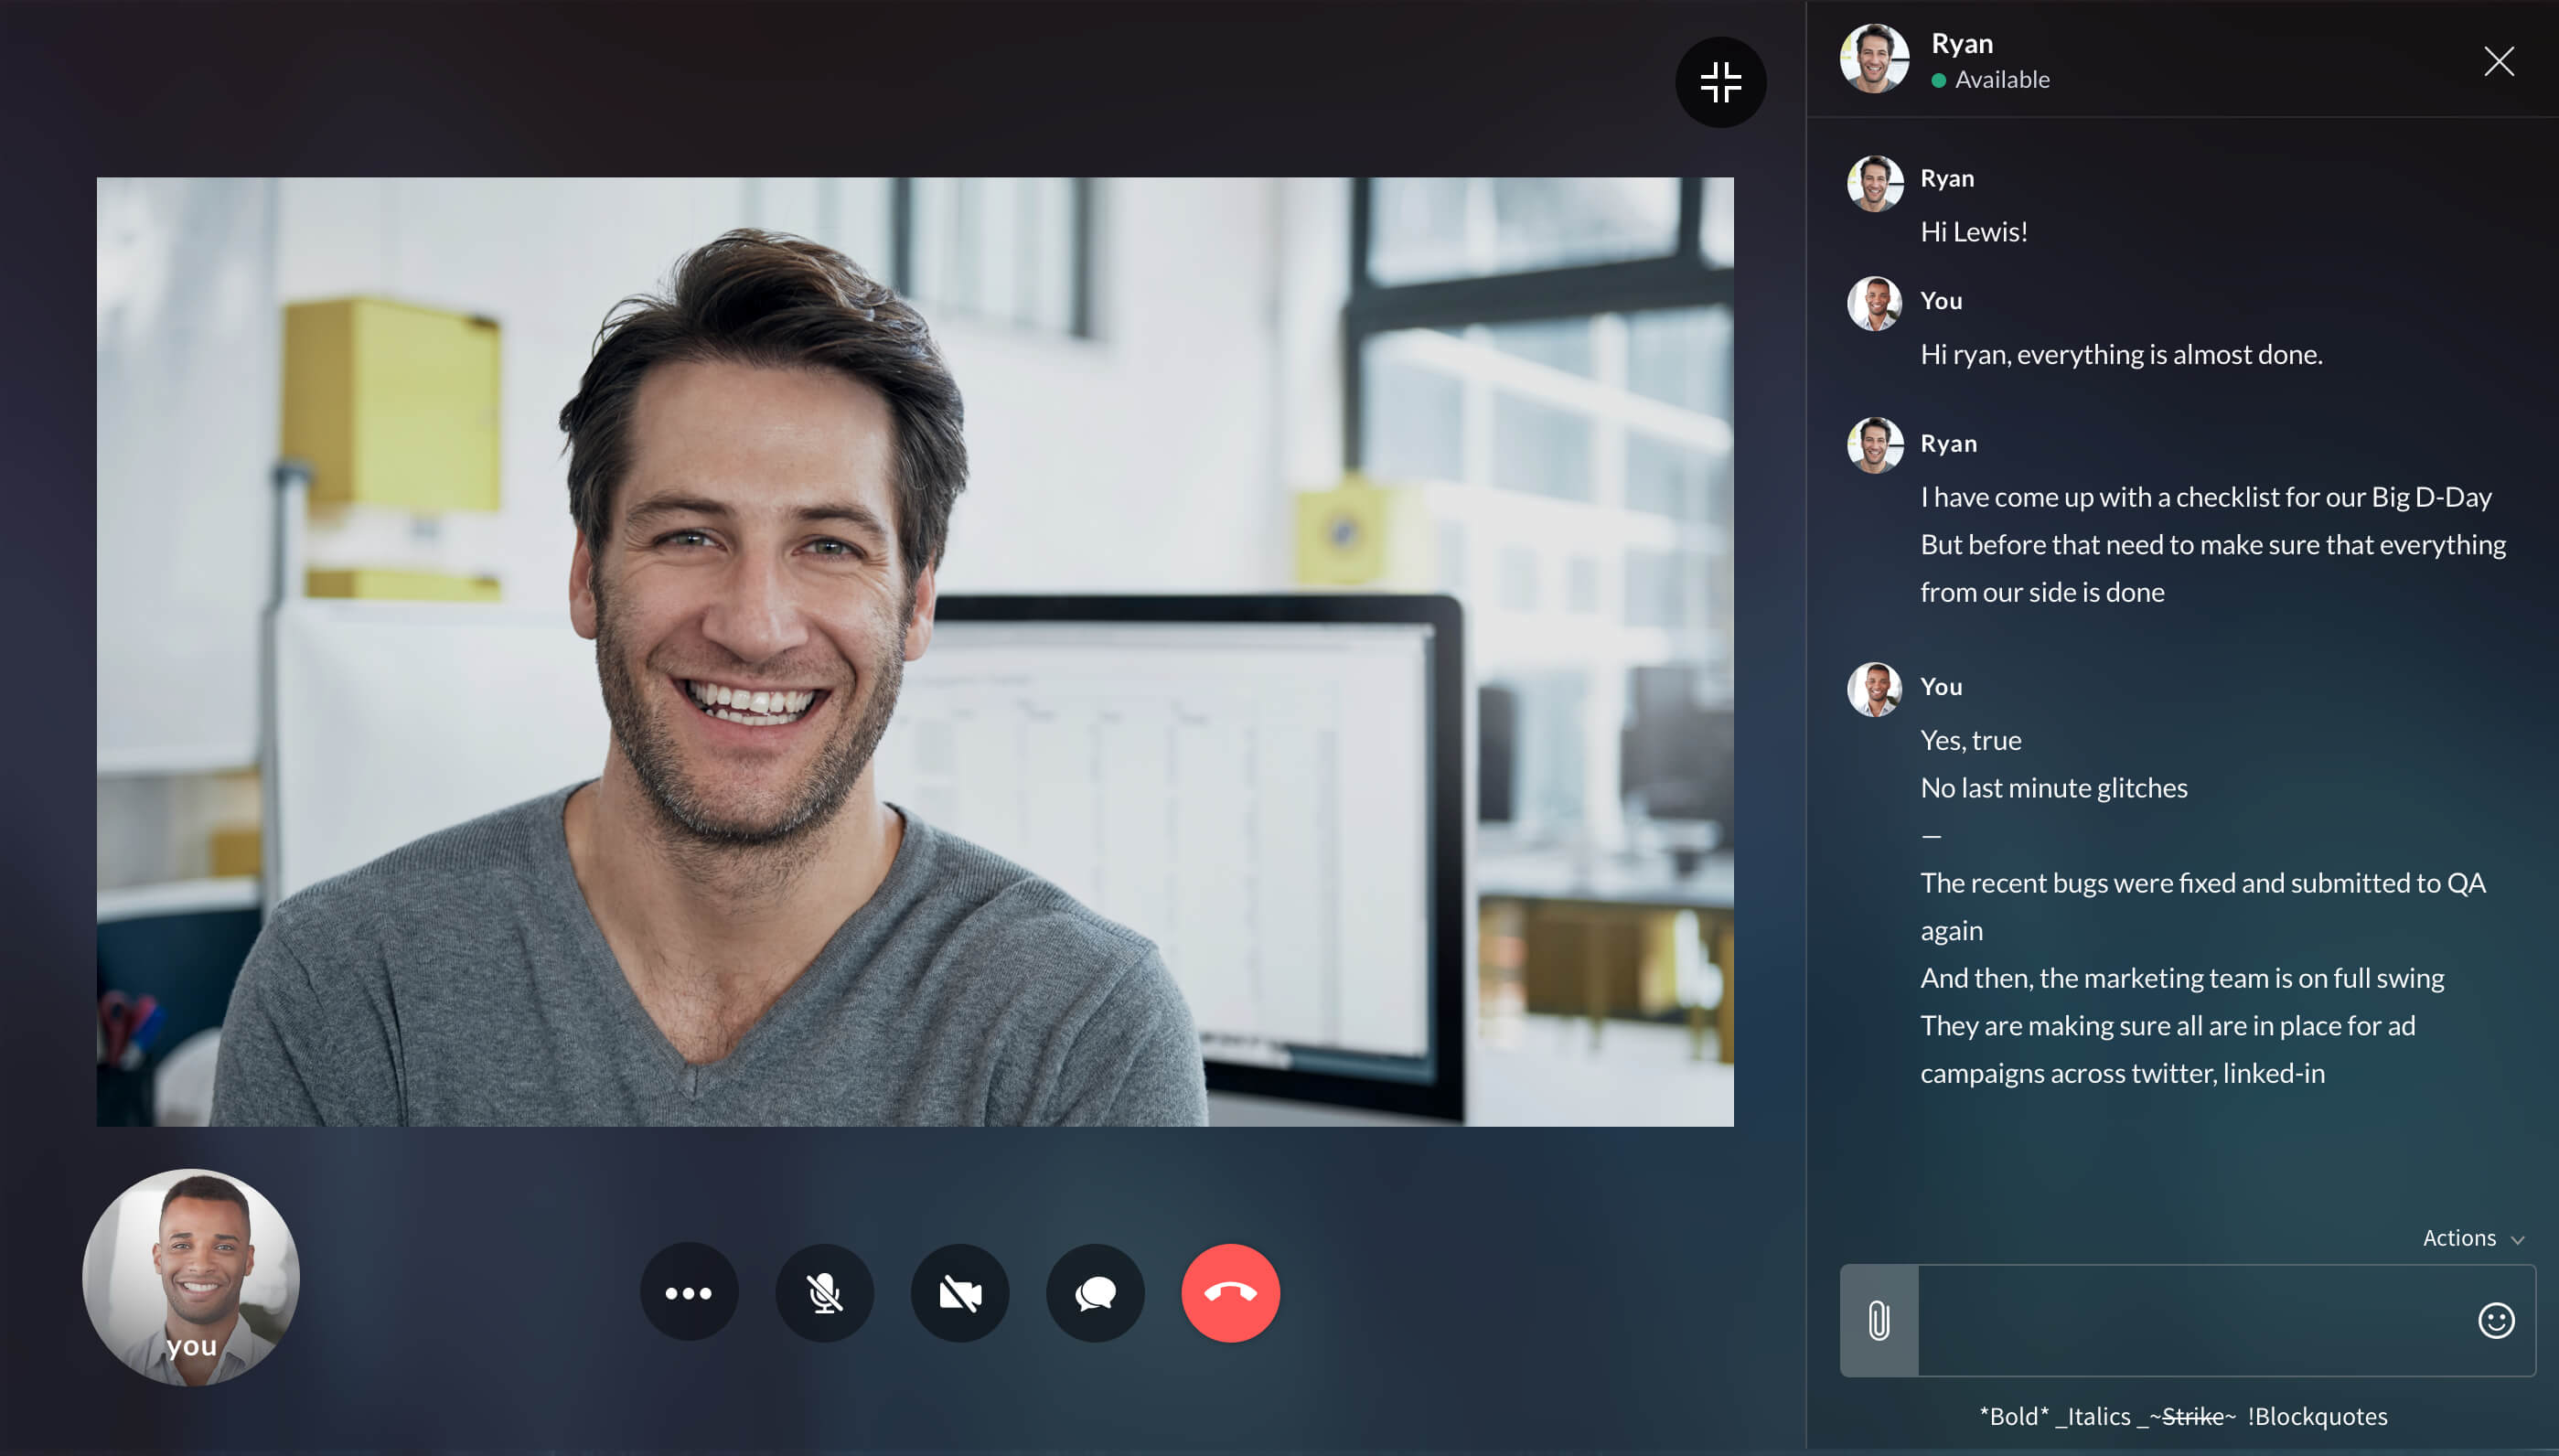 Fullscreen video call